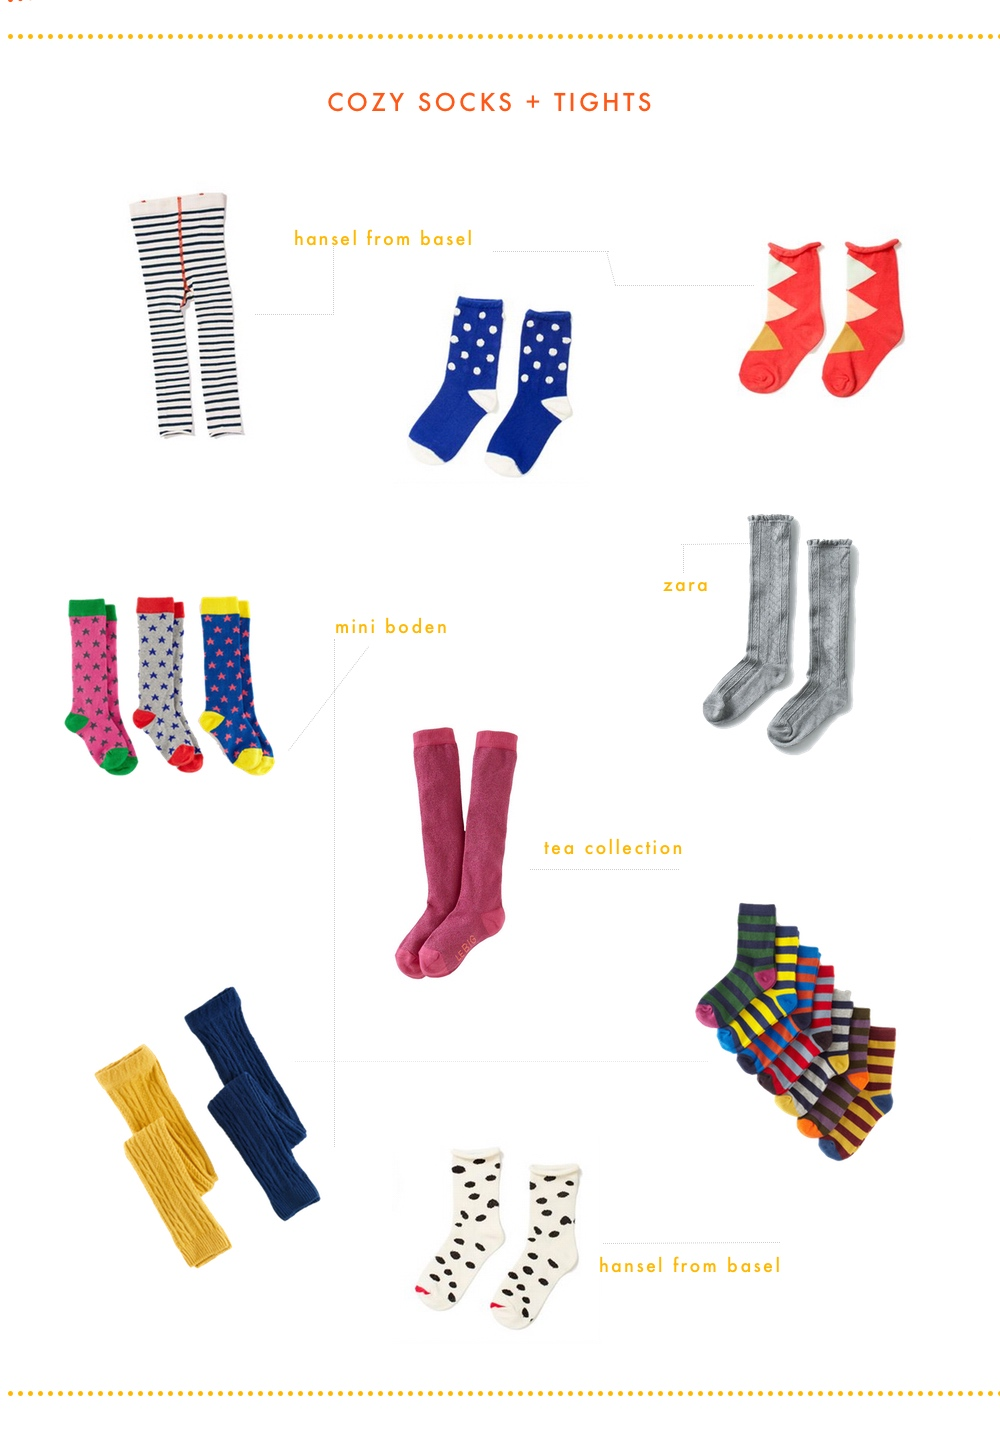 striped tights  |  blue dots  |  red triangle  |  knee-high stars  |  pink sparkle  |      grey lace  |  cable footless  |  white & black  |  striped set